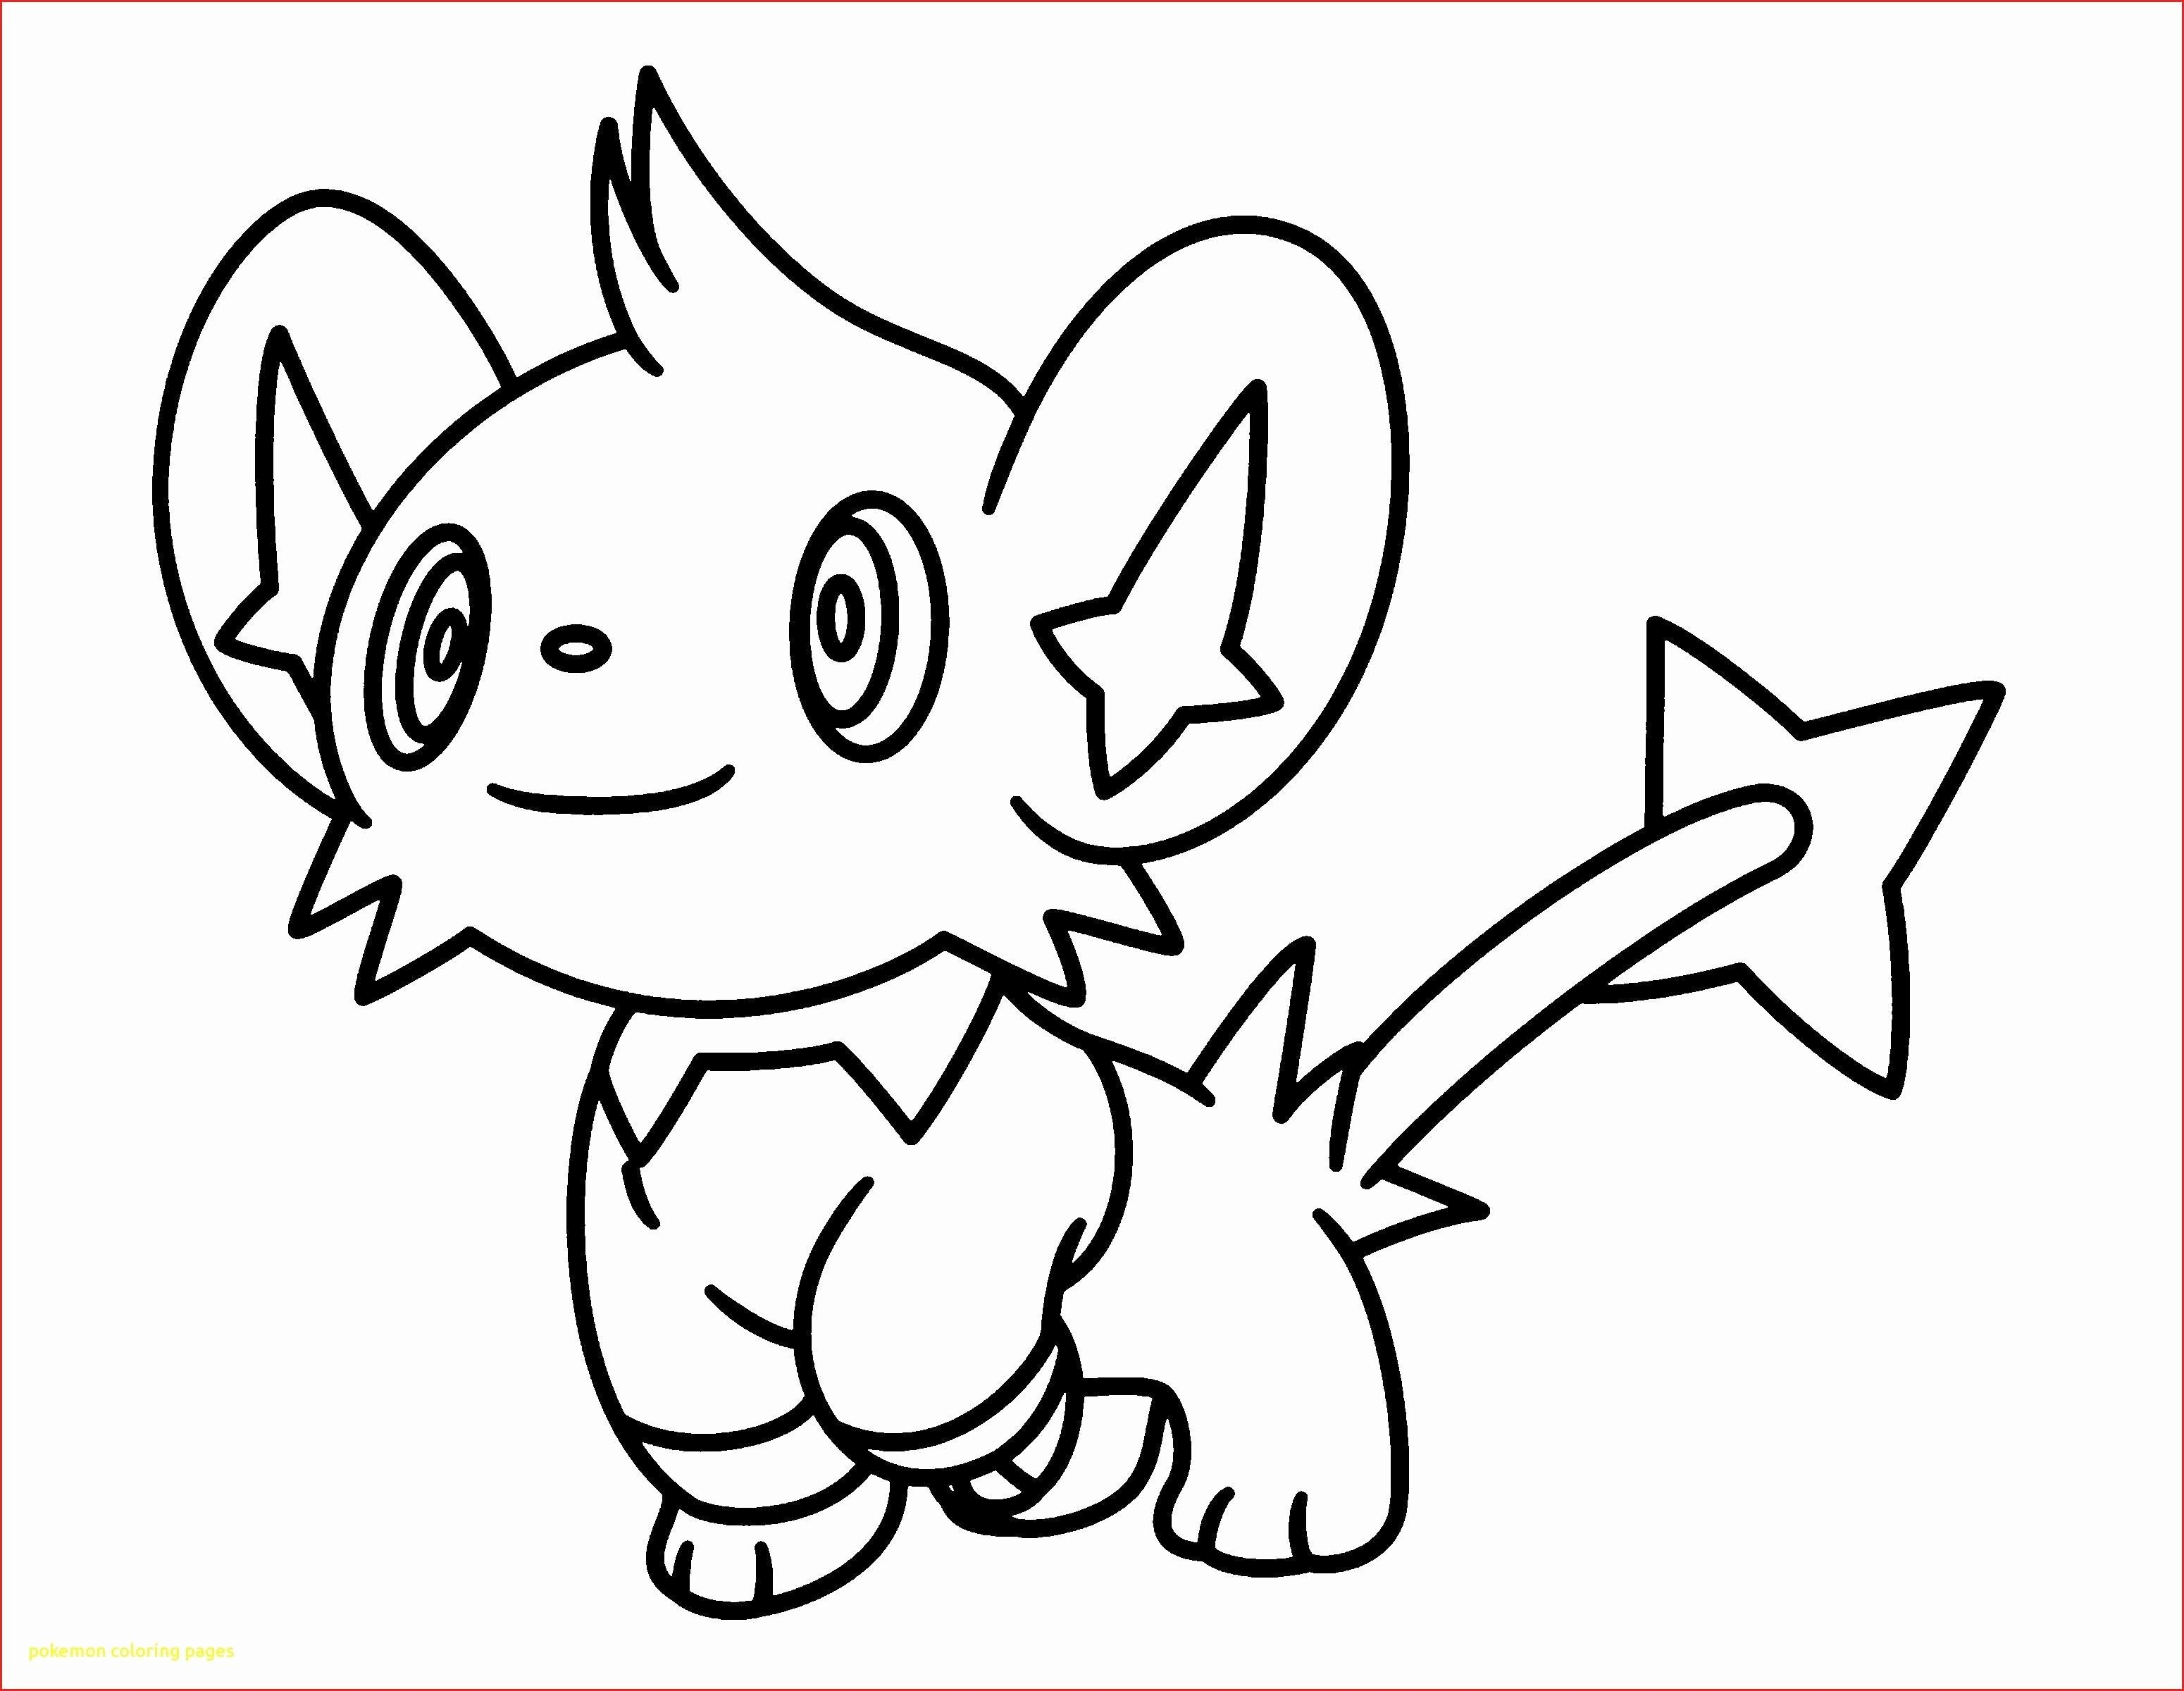 Pokemon Drawing Book Online Elegant Transformer Coloring Books Best Free Coloring Pages For Pokemon Coloring Pikachu Coloring Page Pokemon Coloring Sheets